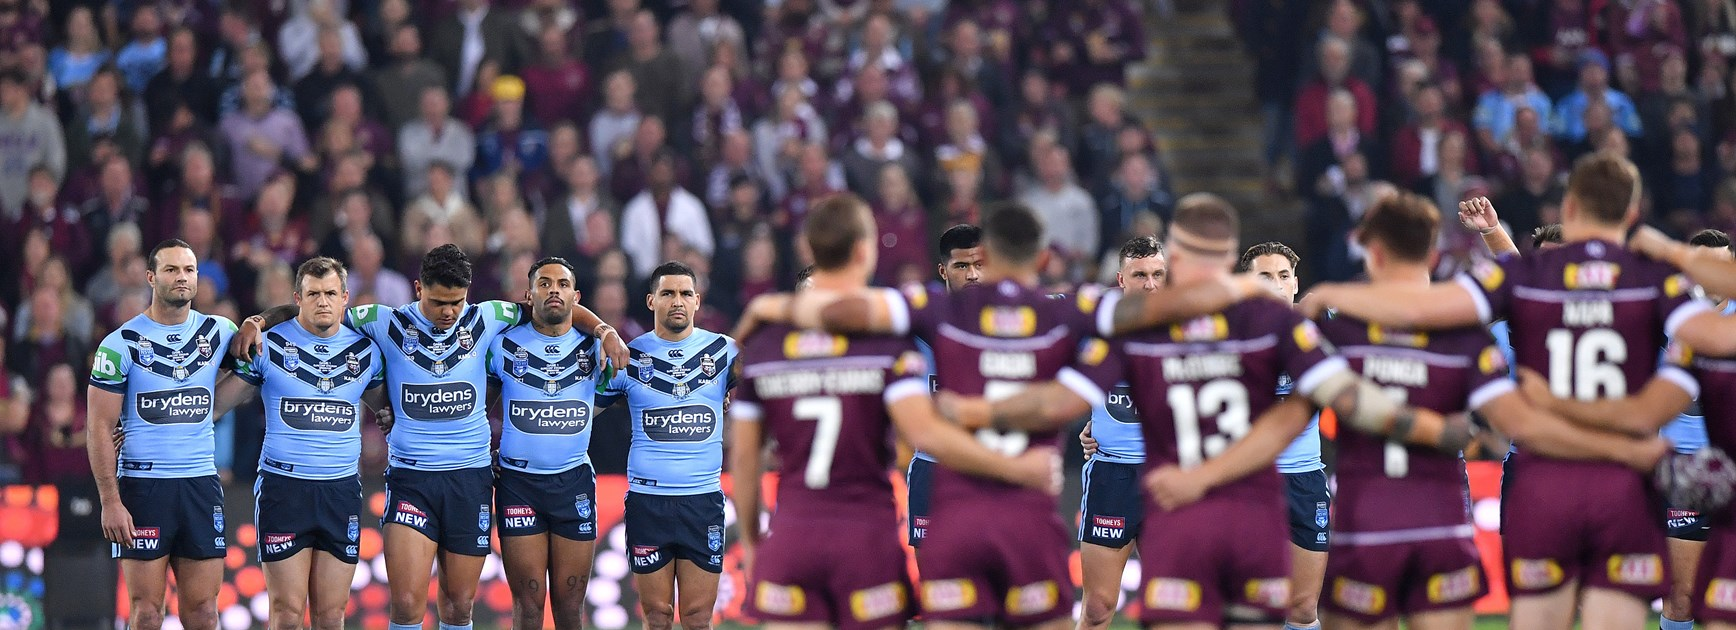 Watch the NRL & State of Origin LIVE from overseas